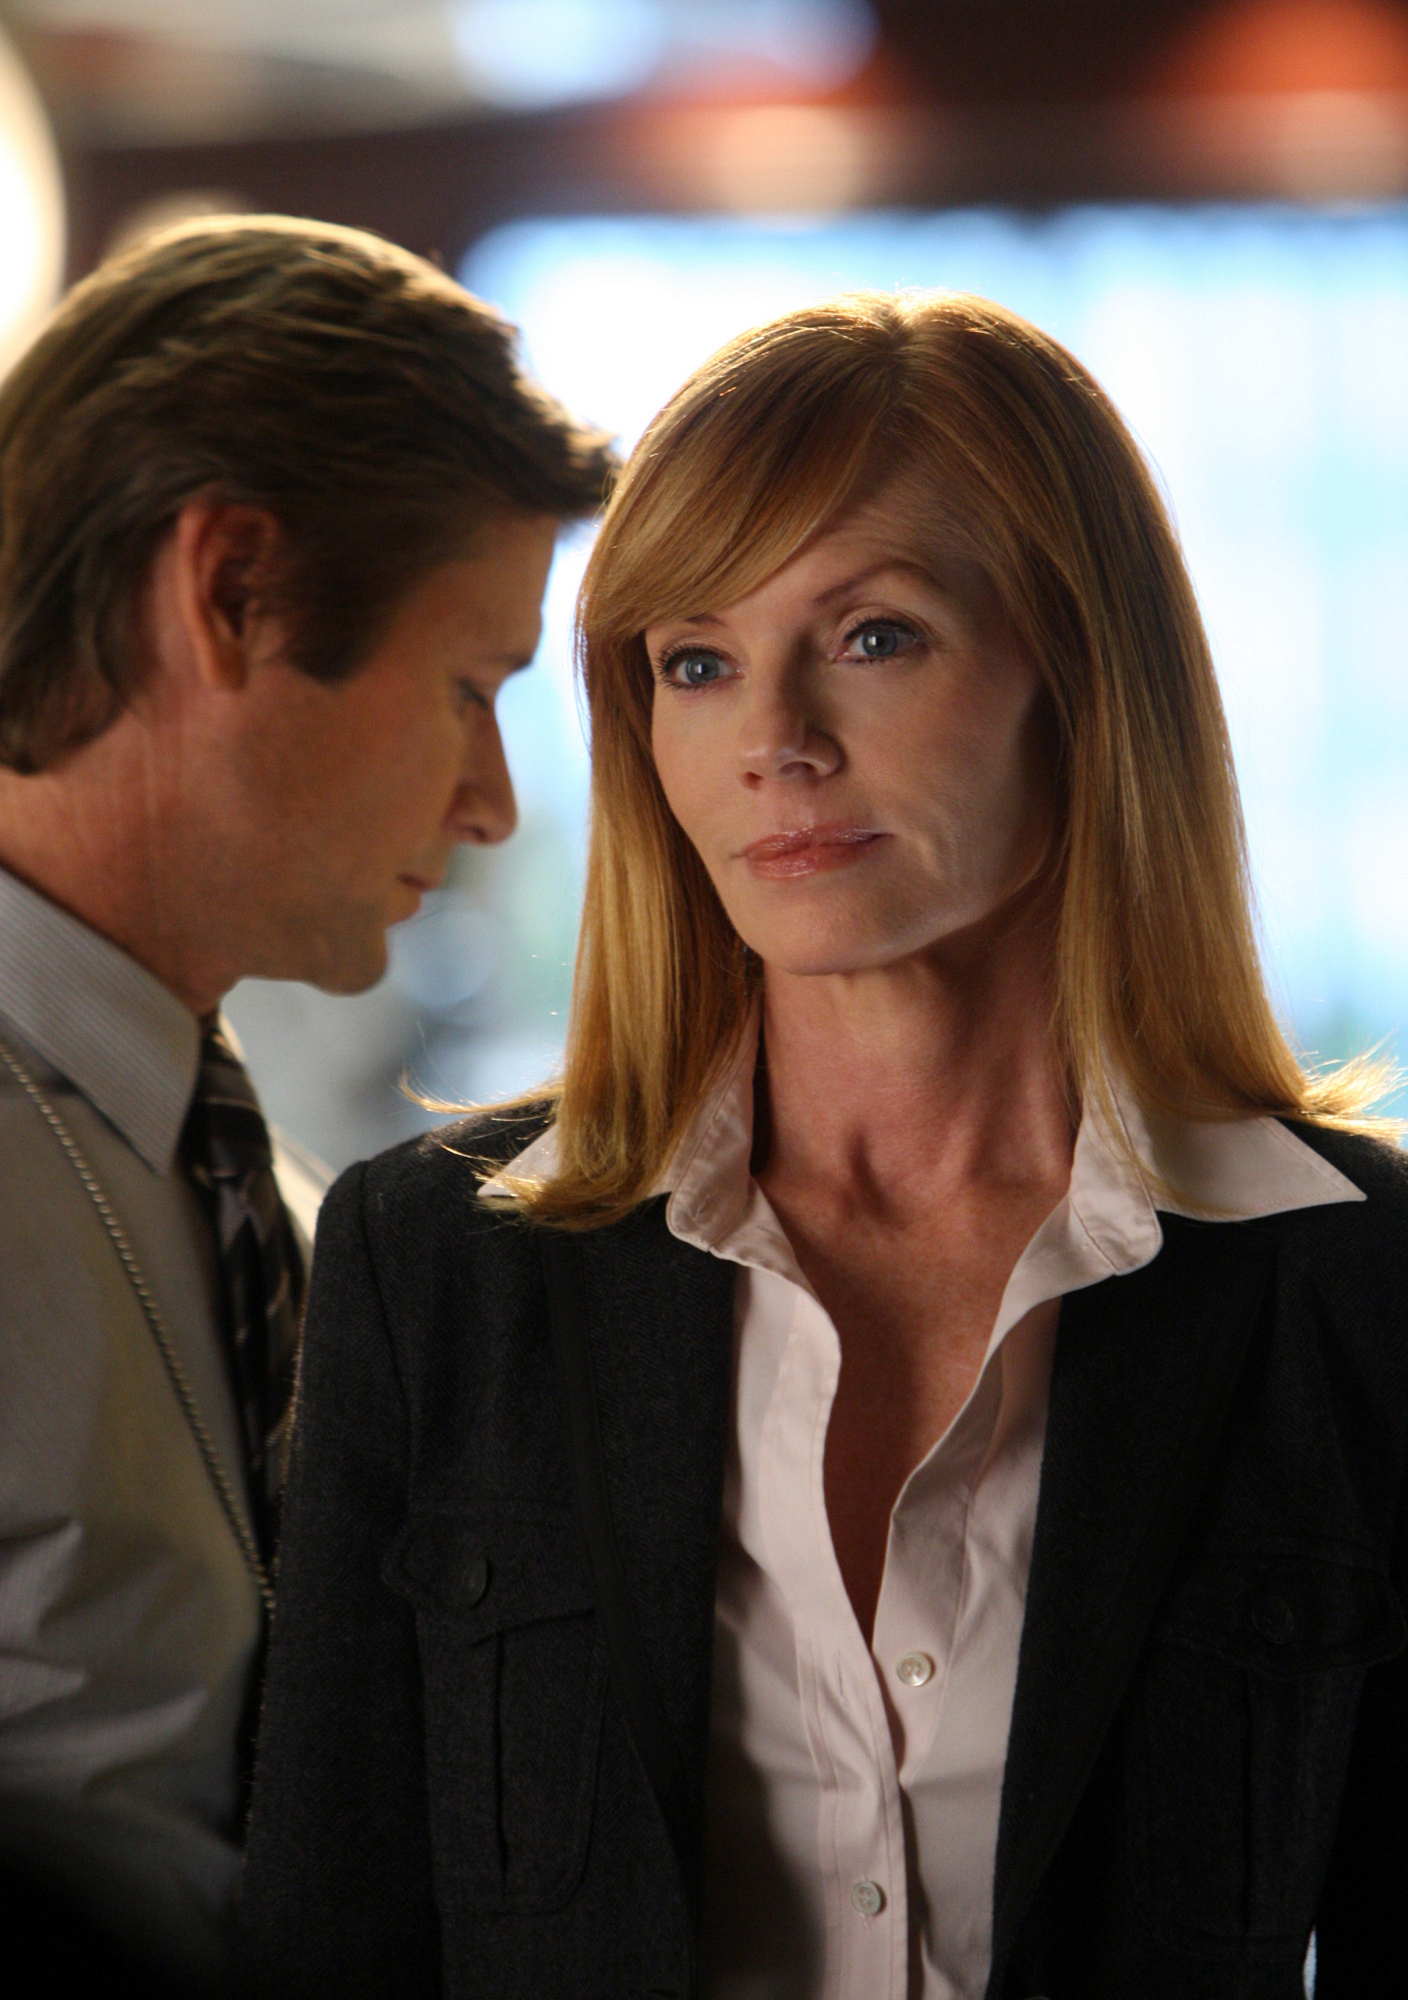 Agent Viggo McQuid and Catherine Willows